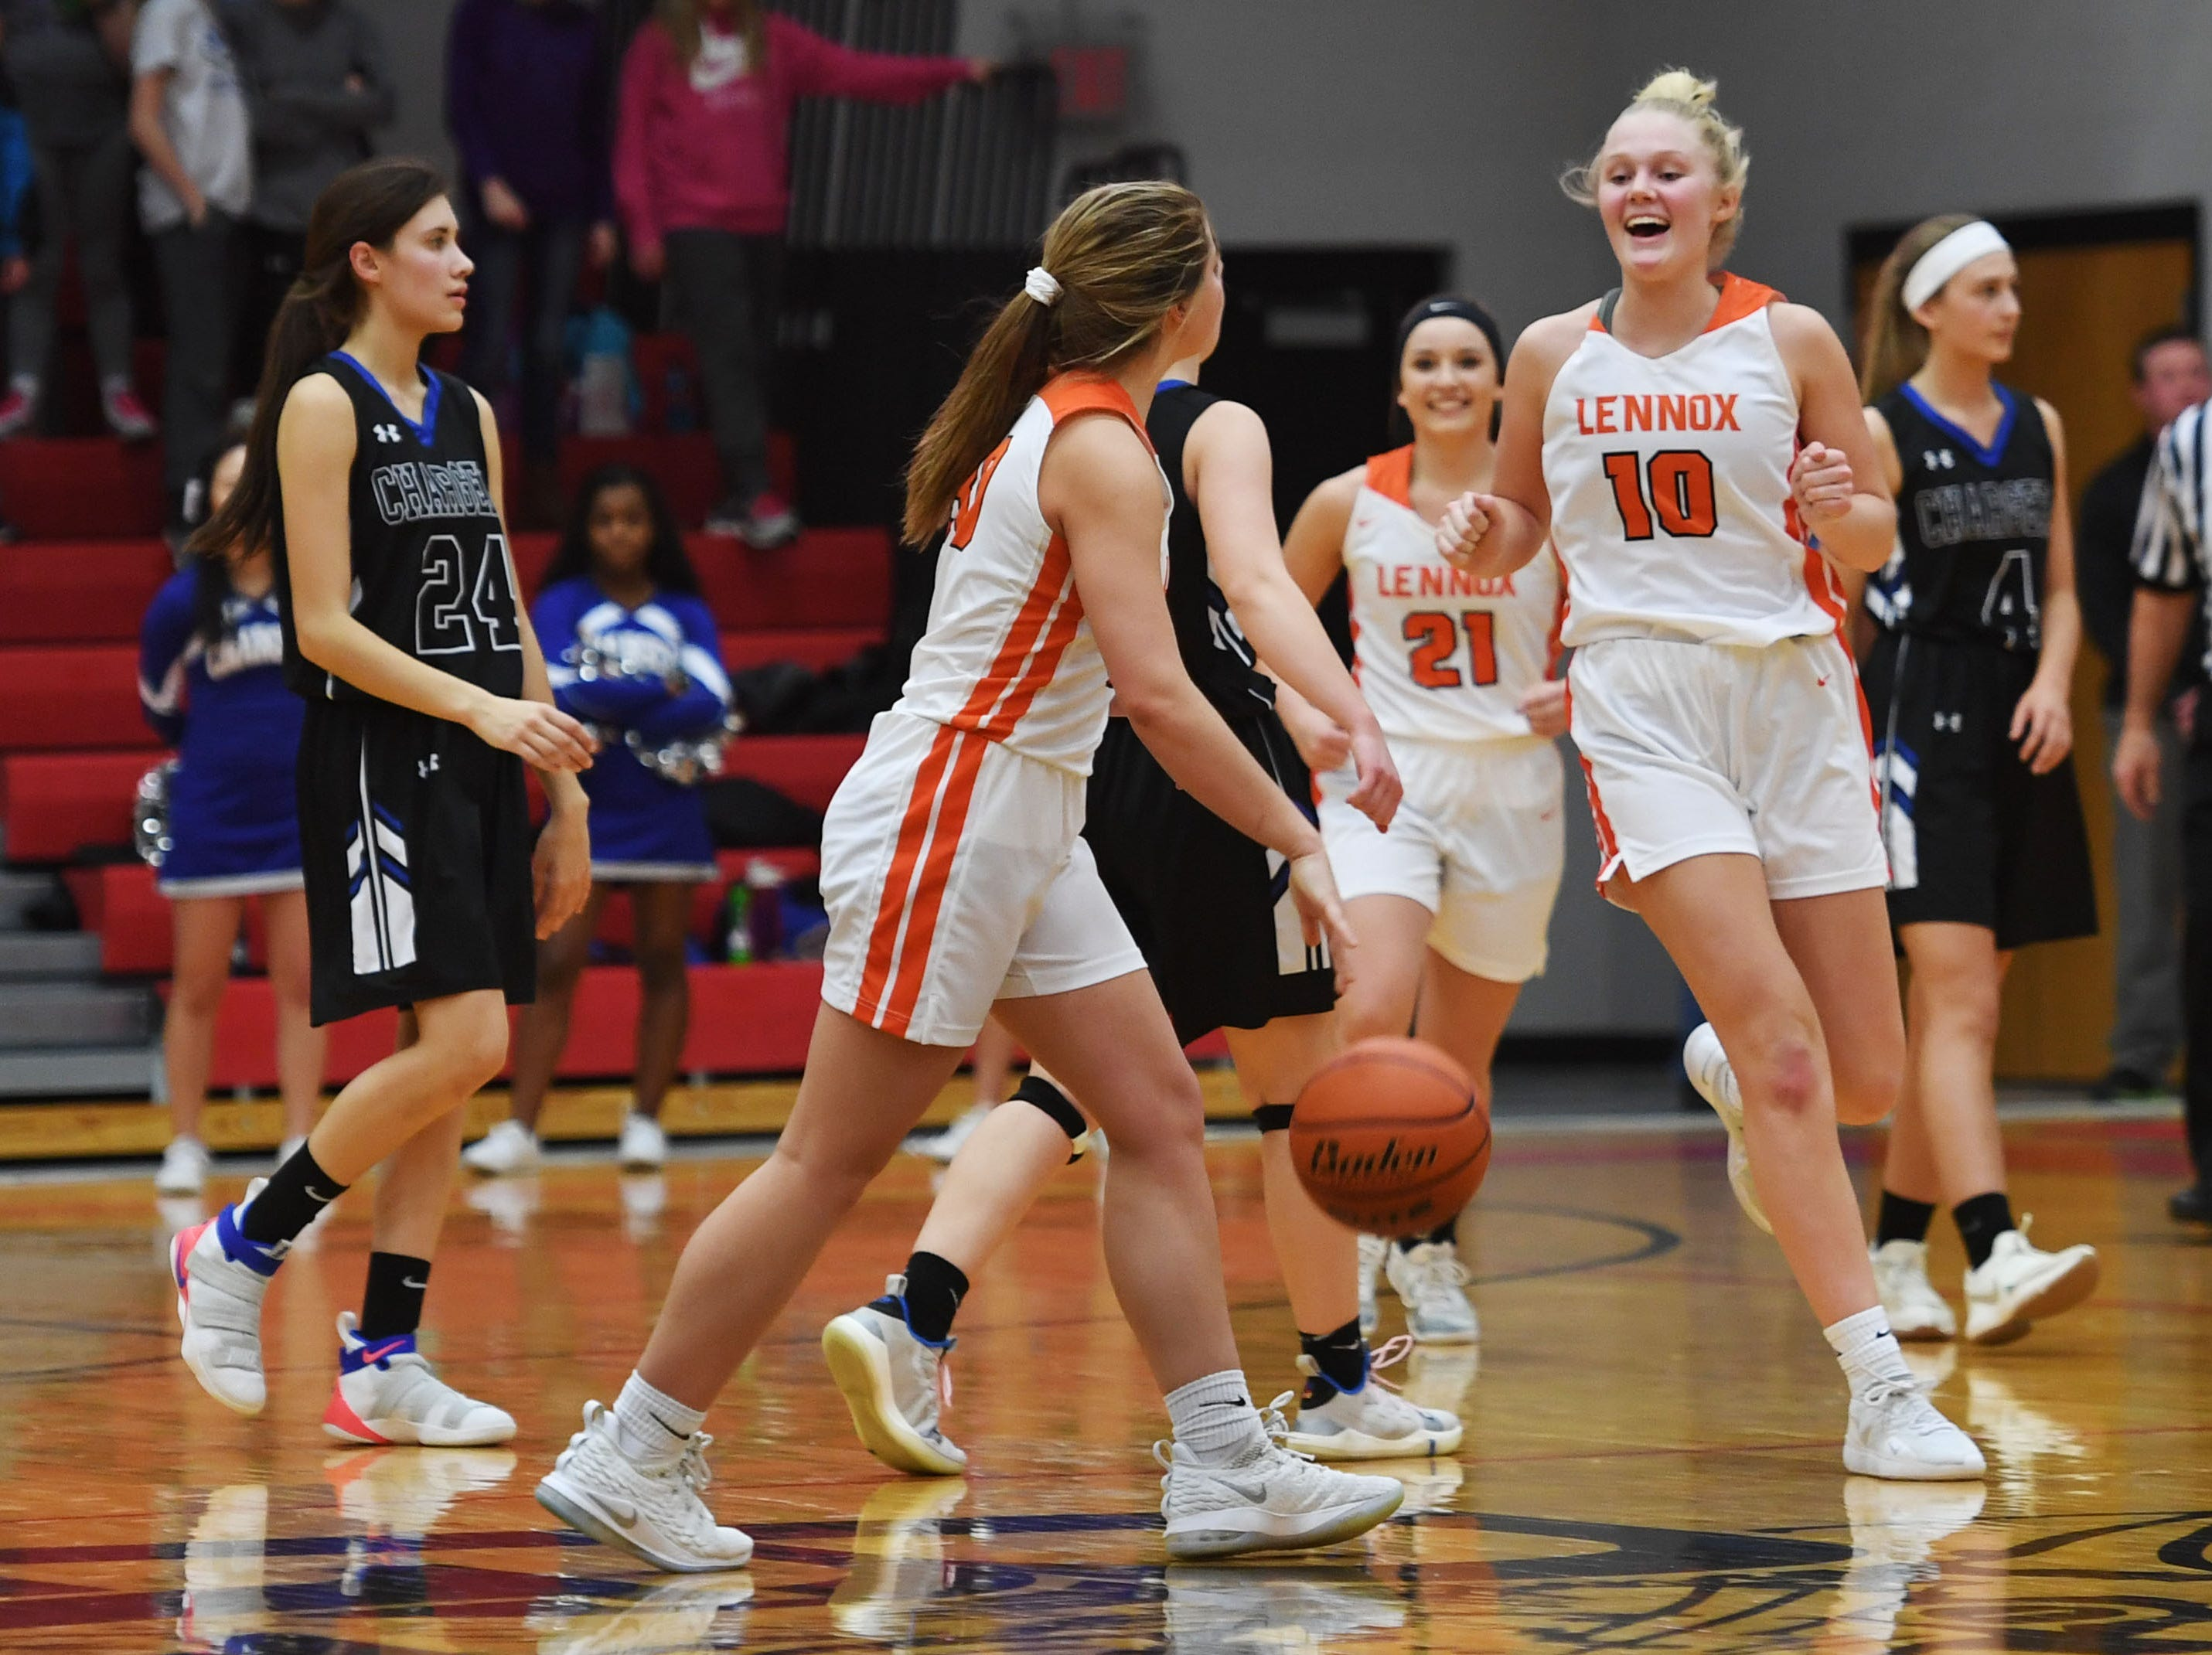 Lennox begins to celebrate at the end of the fourth period after their win against Sioux Falls Christian Thursday, March 7, at Brandon Valley High School in Brandon Valley.